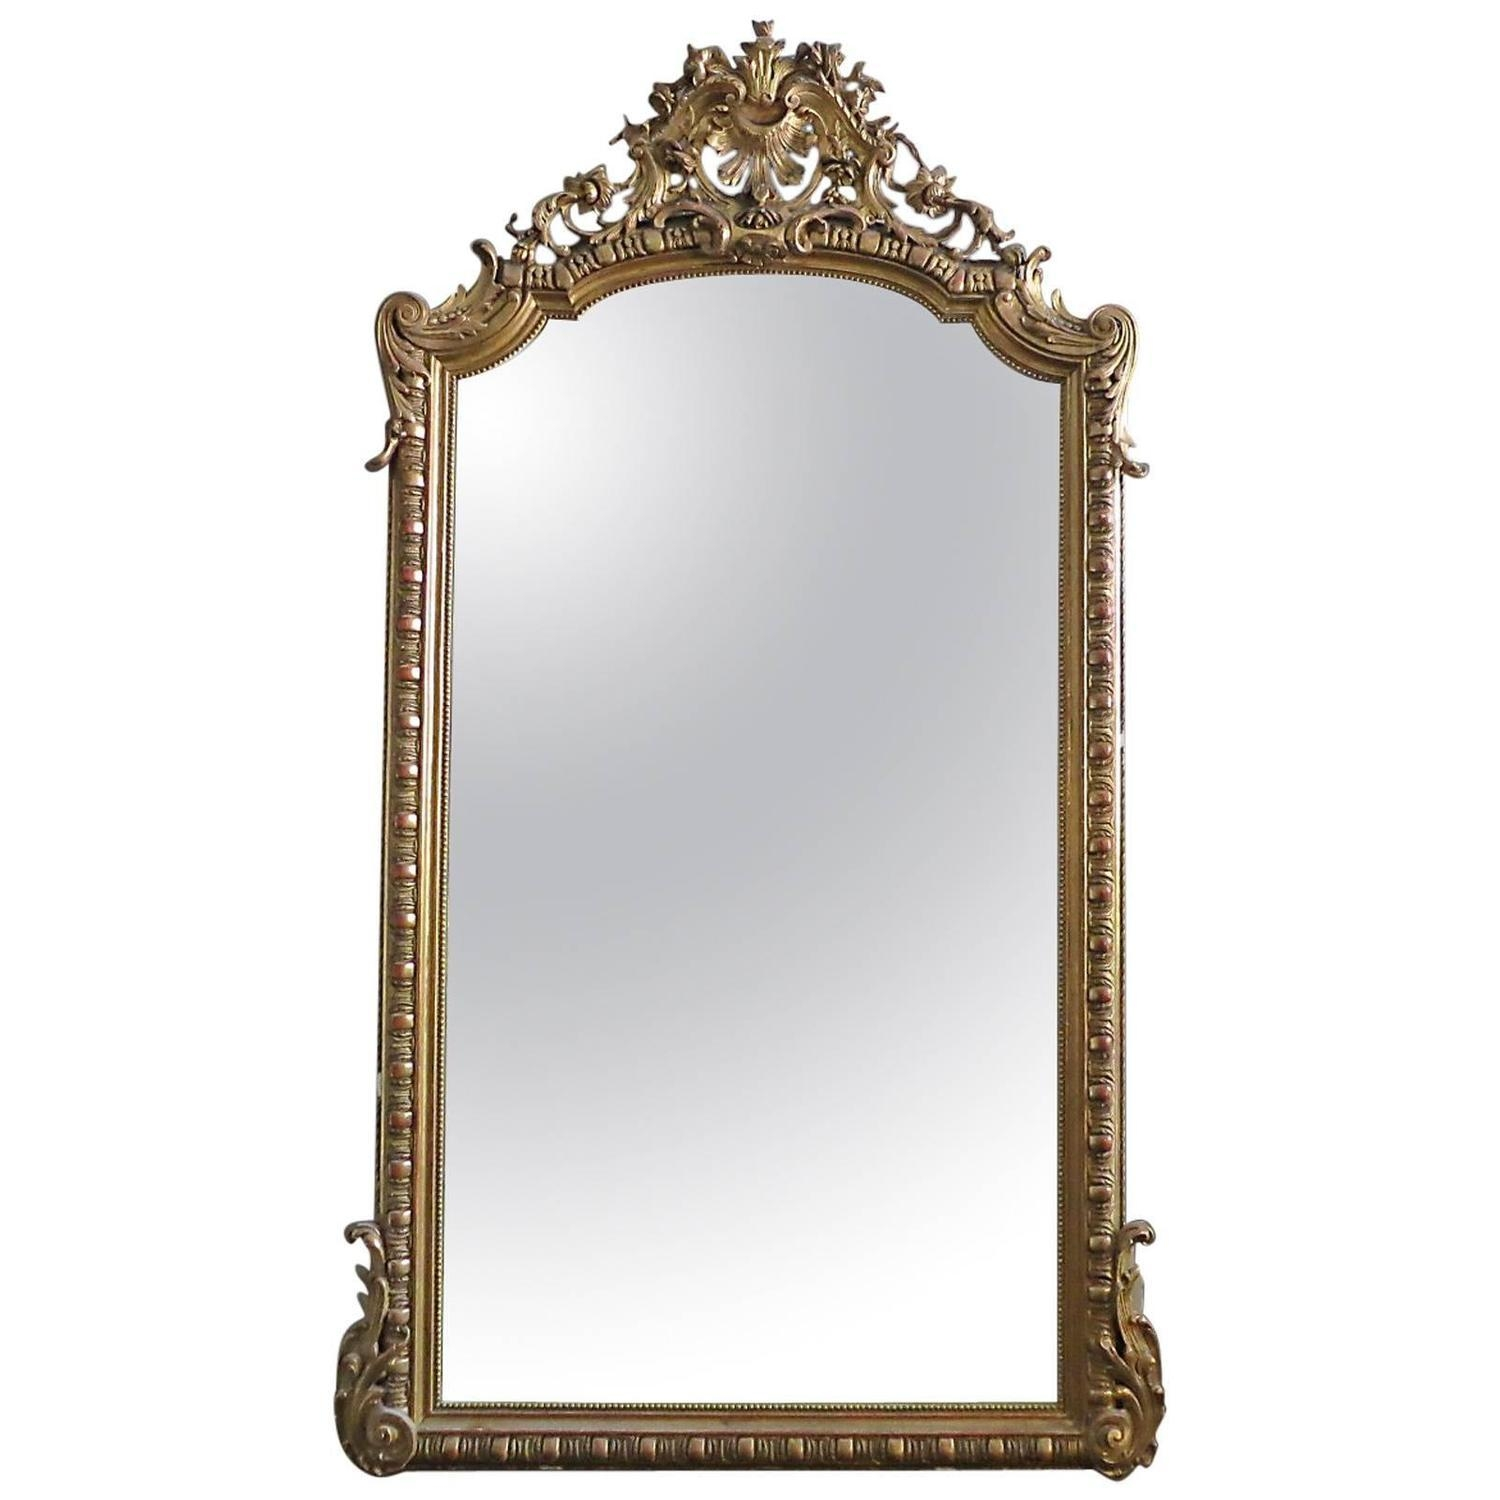 Large Antique French Gold Gilt Mirror At 1Stdibs In Gold Gilt Mirror (Image 10 of 20)